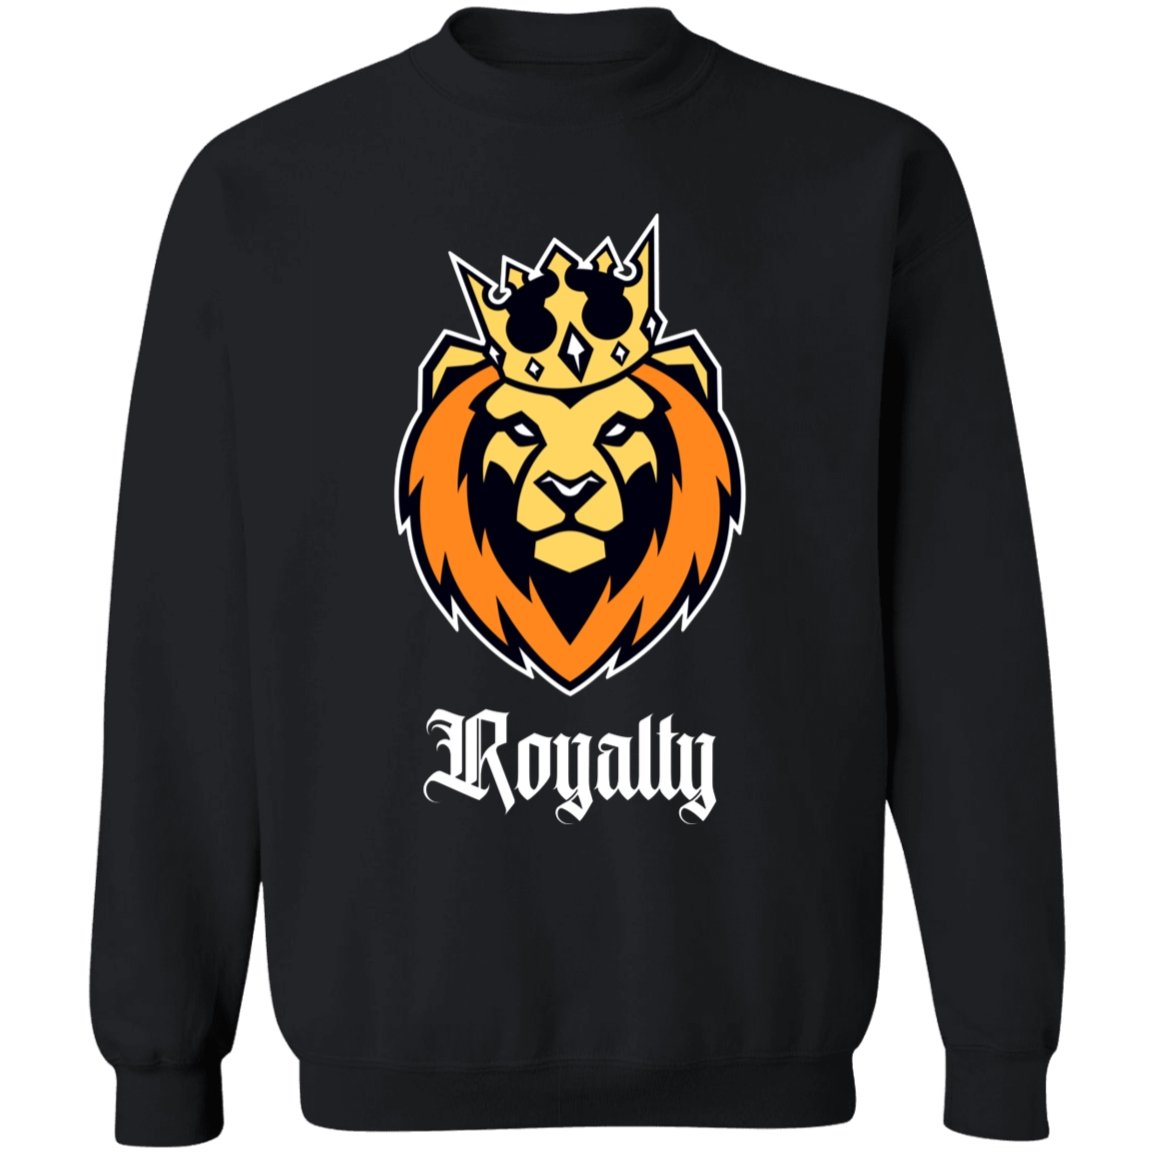 Lion King Black Royalty Sweatshirt - Sugar Streetwear